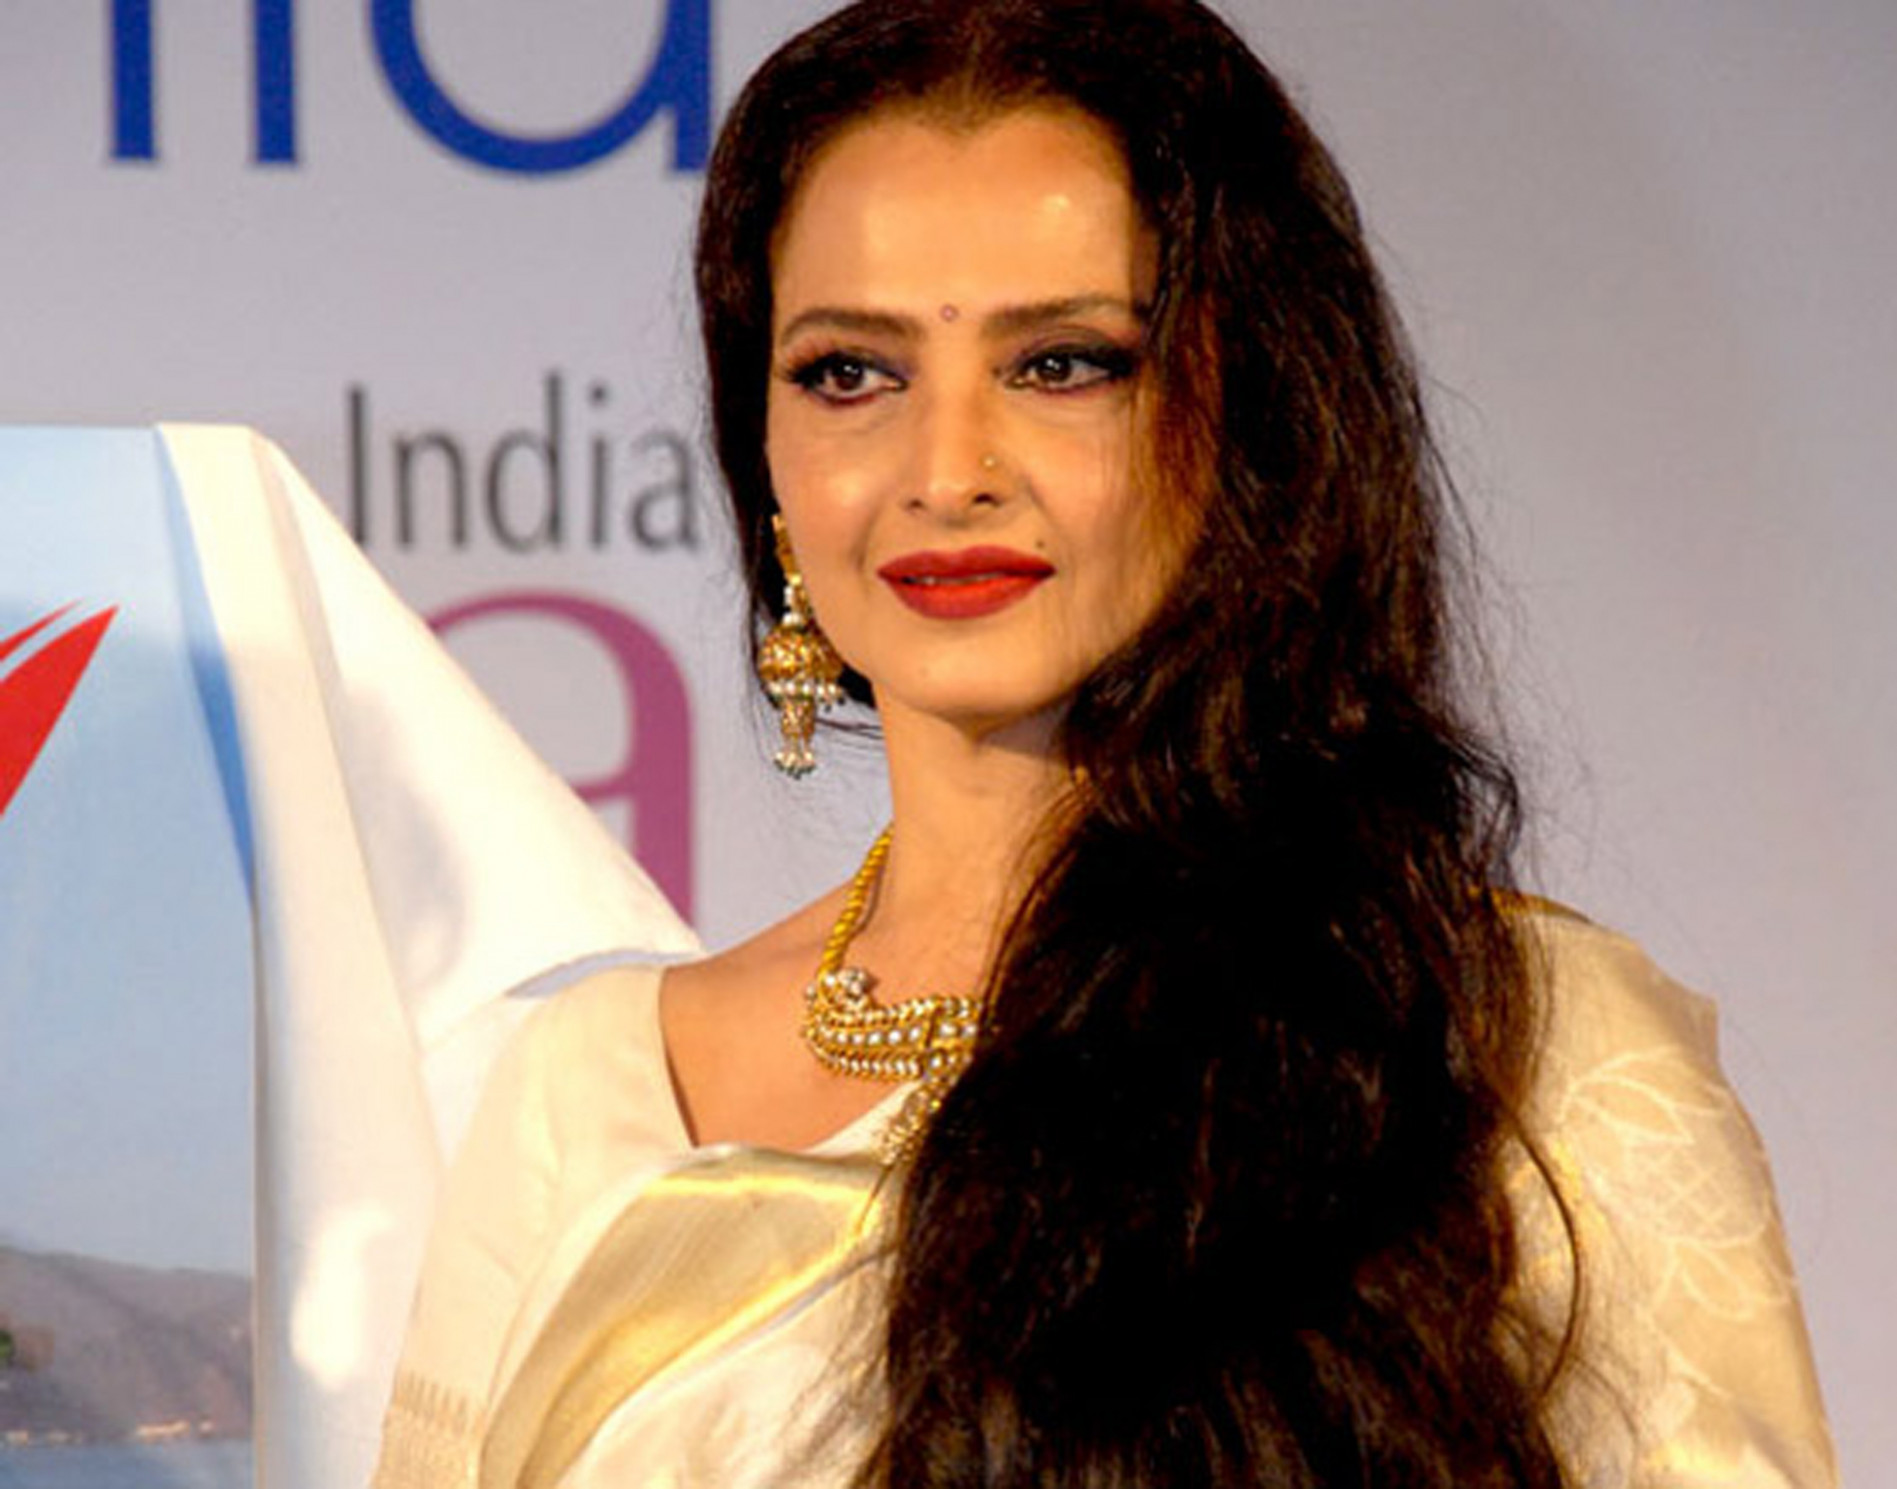 Ten best Bollywood actresses in Hindi movies